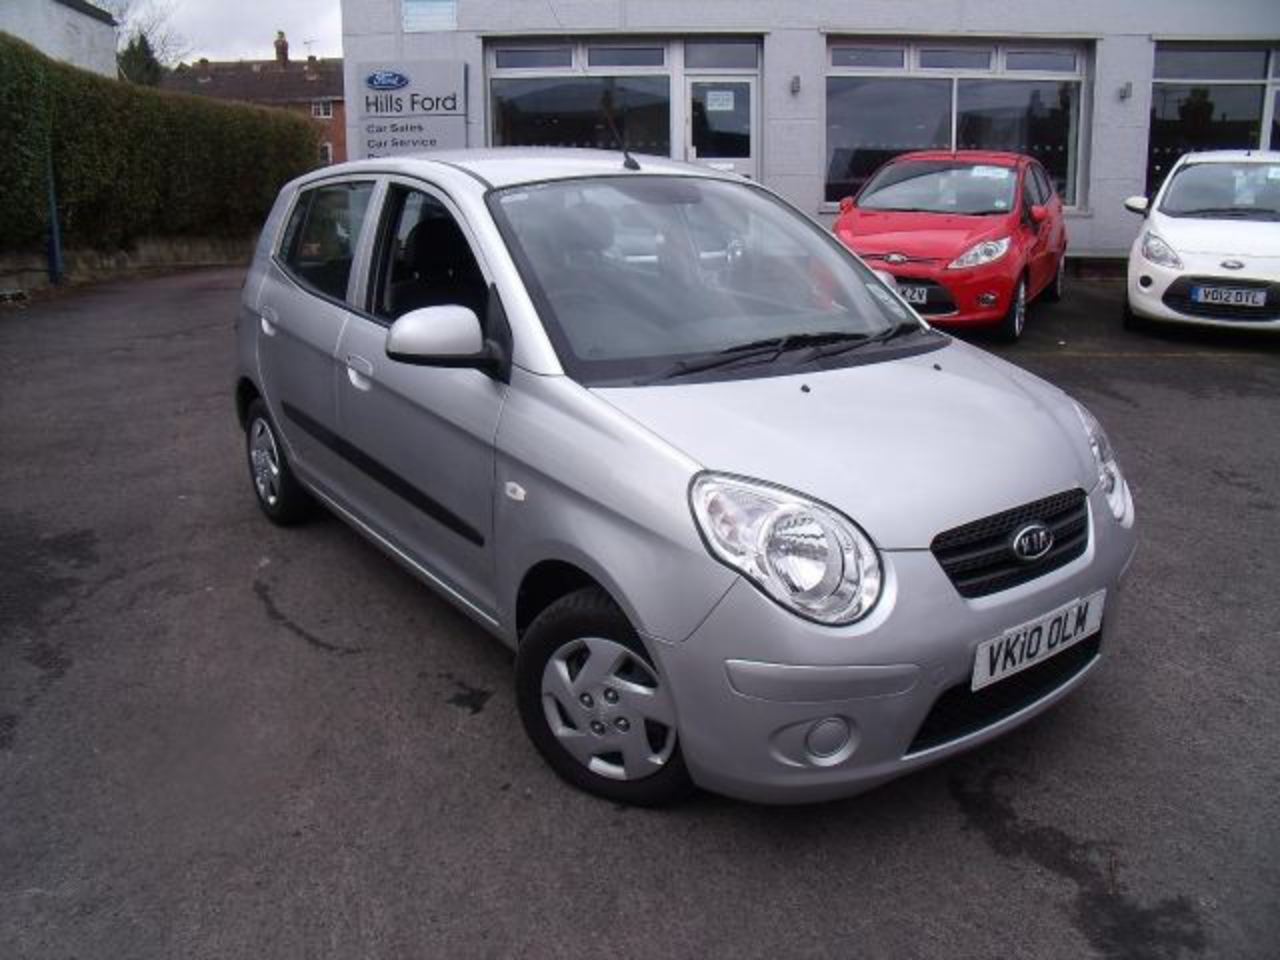 Kia Picanto LX, Blue, 2005, | Friday-Ad classifieds